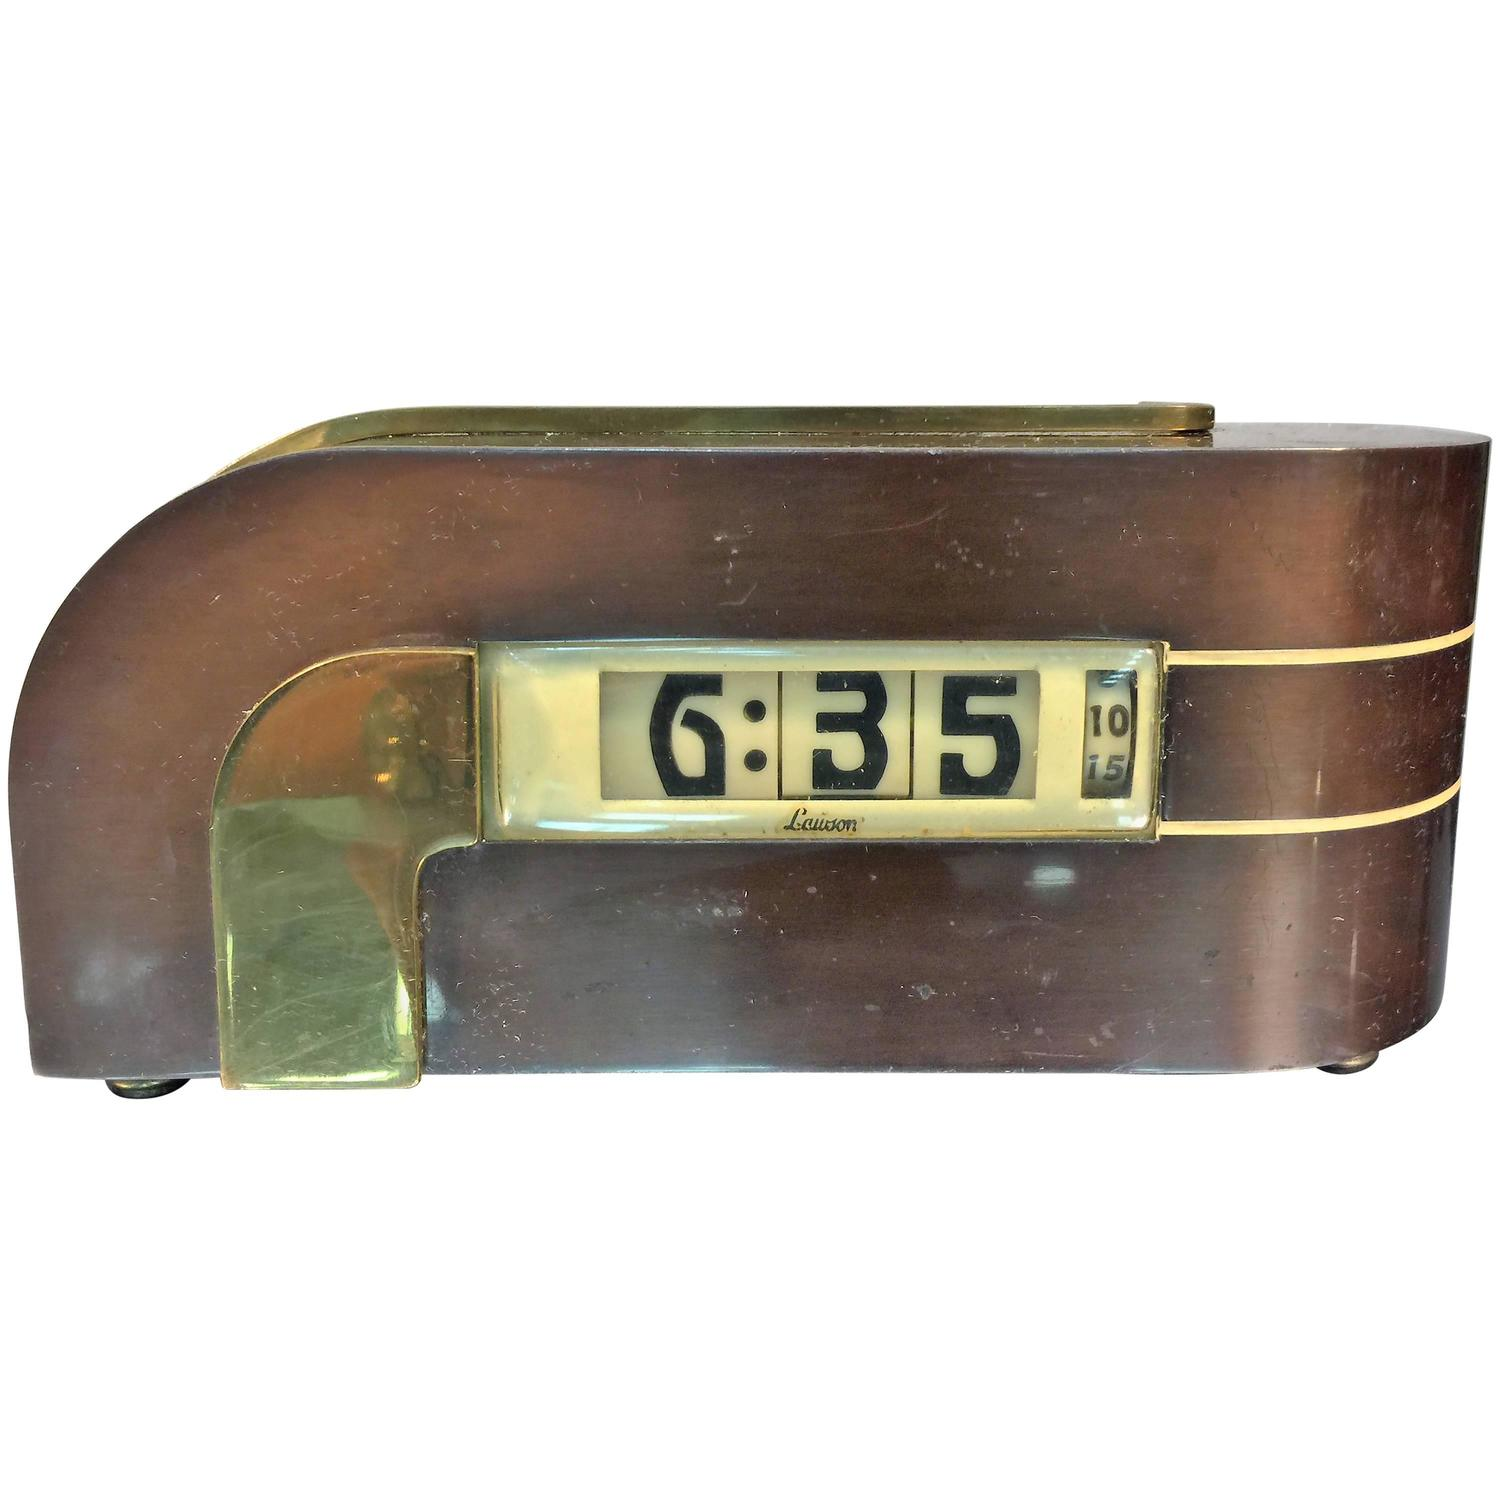 Digital Clock For Sale Streamline Kem Weber Art Deco Digital Clock For Sale At